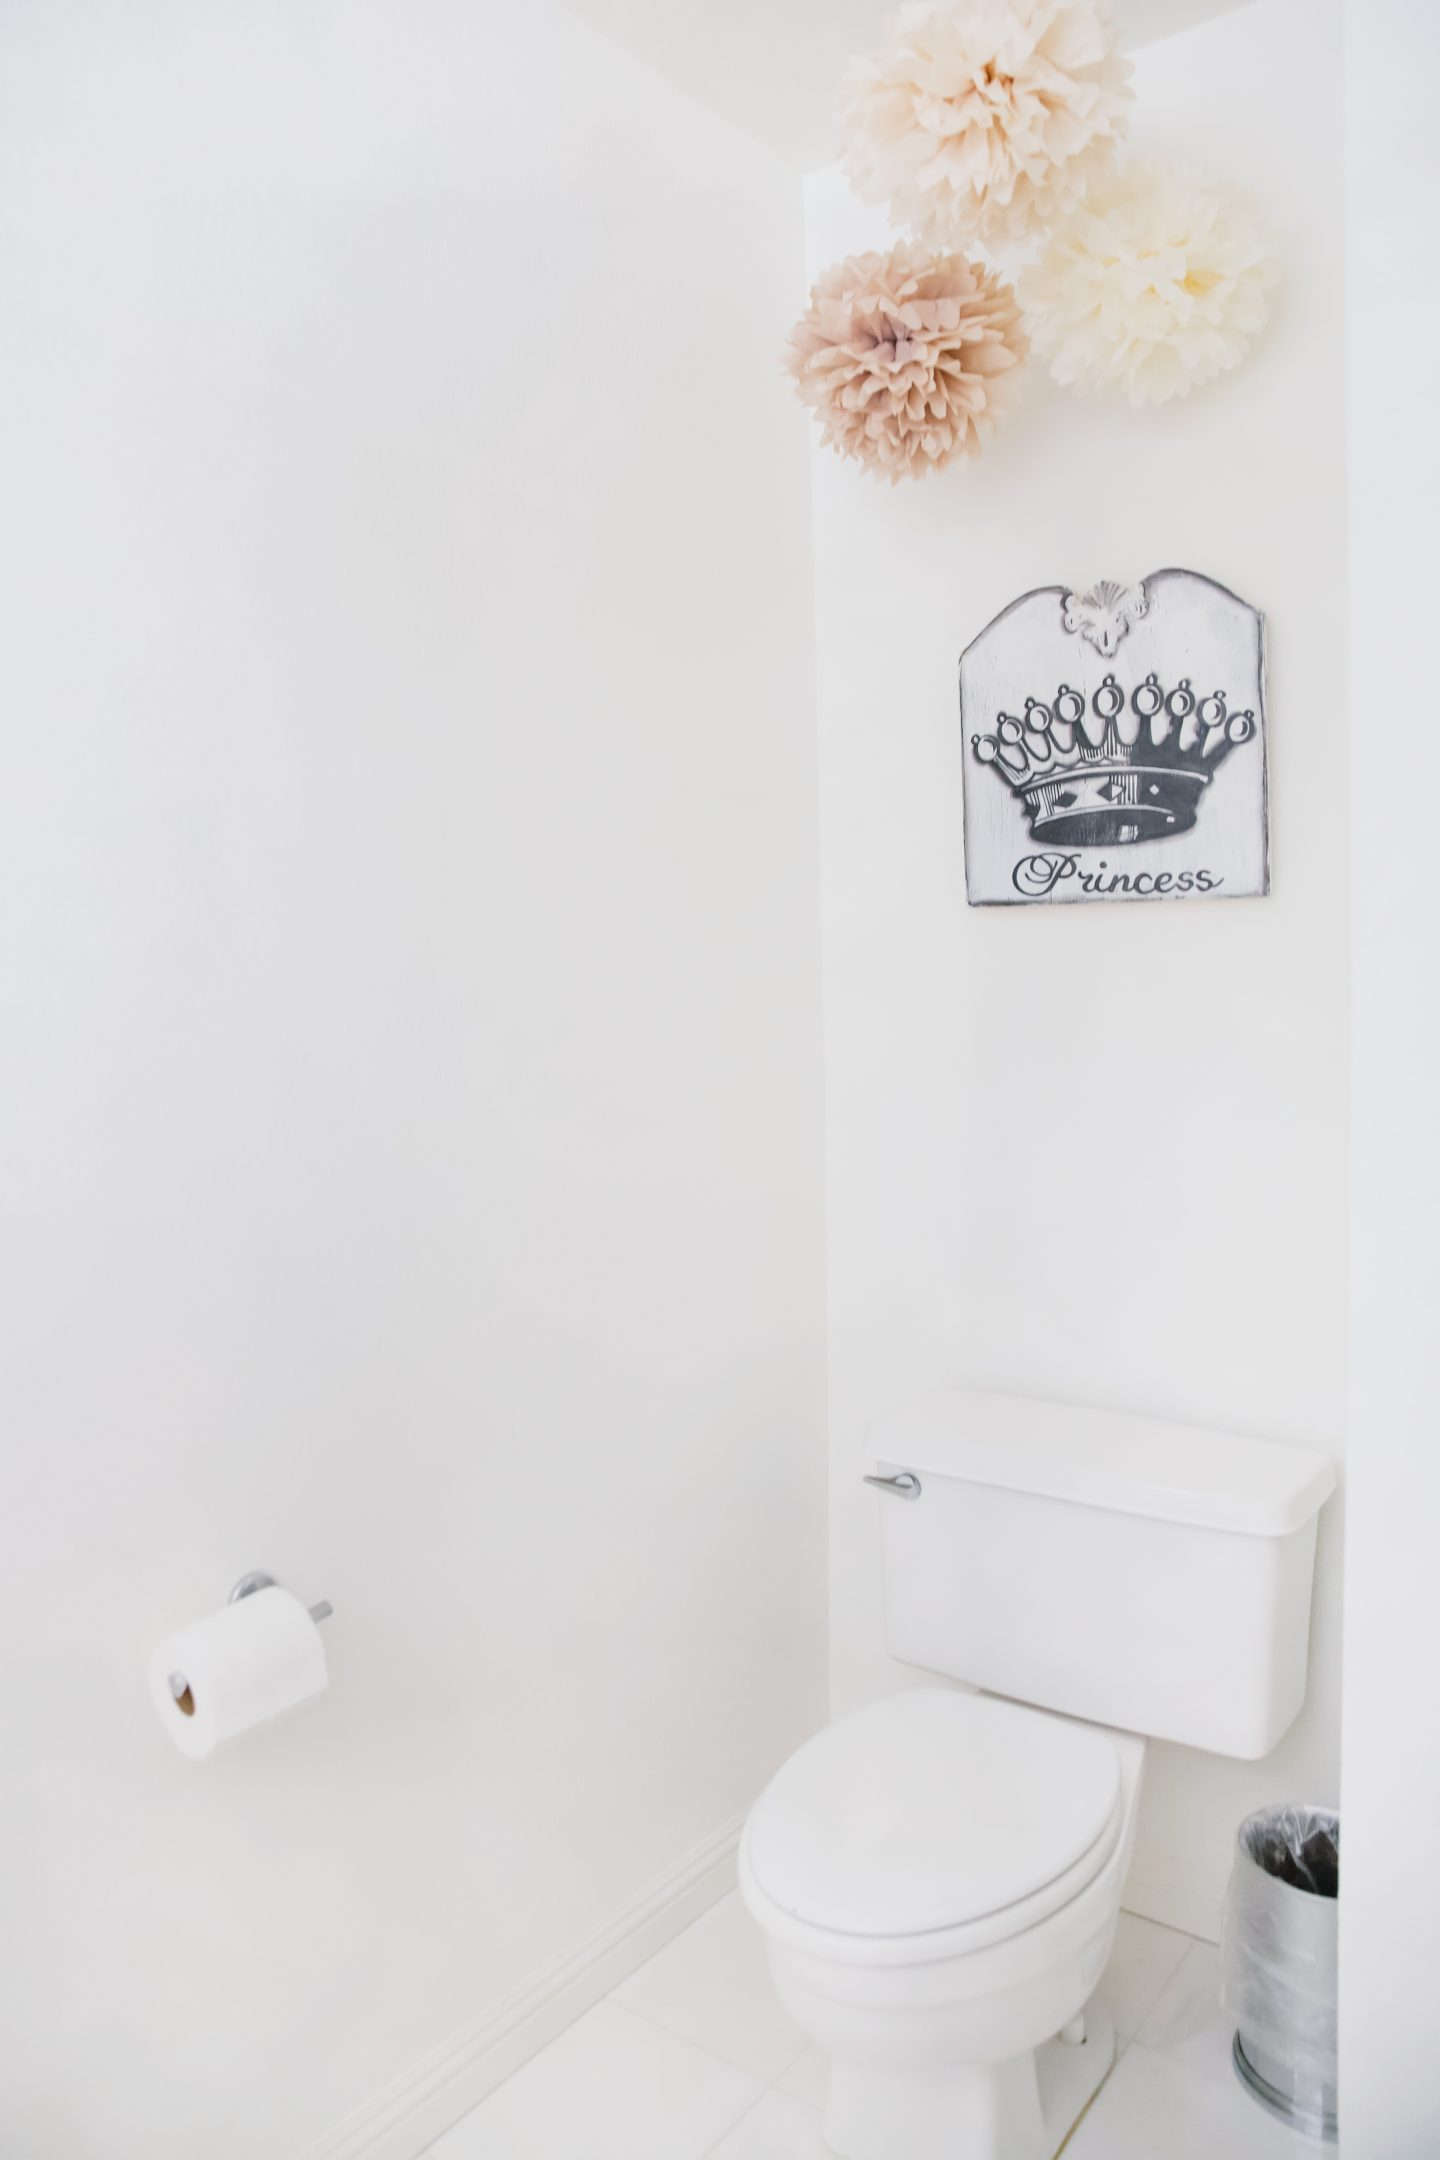 Wayfair floral bathroom decor featured by top US life and style blog, Lombard and Fifth: before